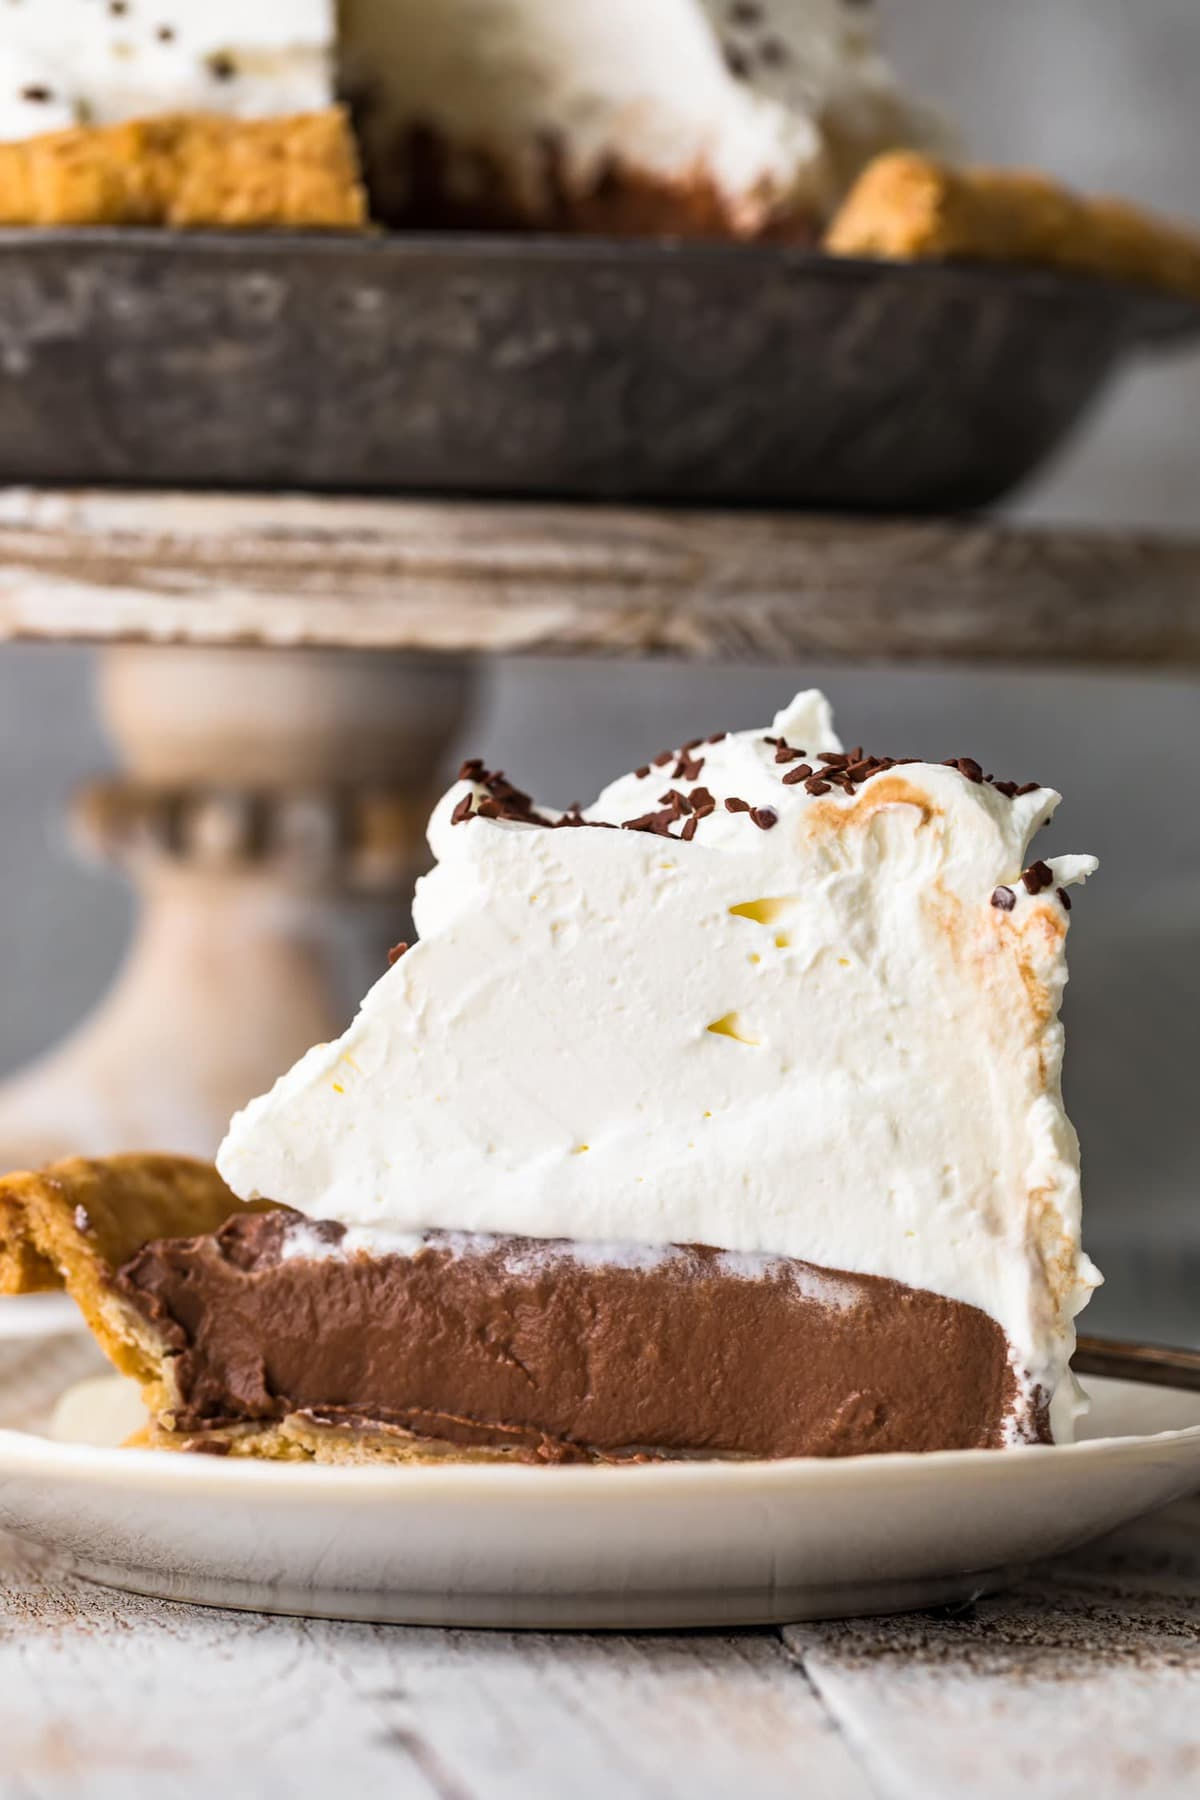 Close up of a slice of chocolate cream pie